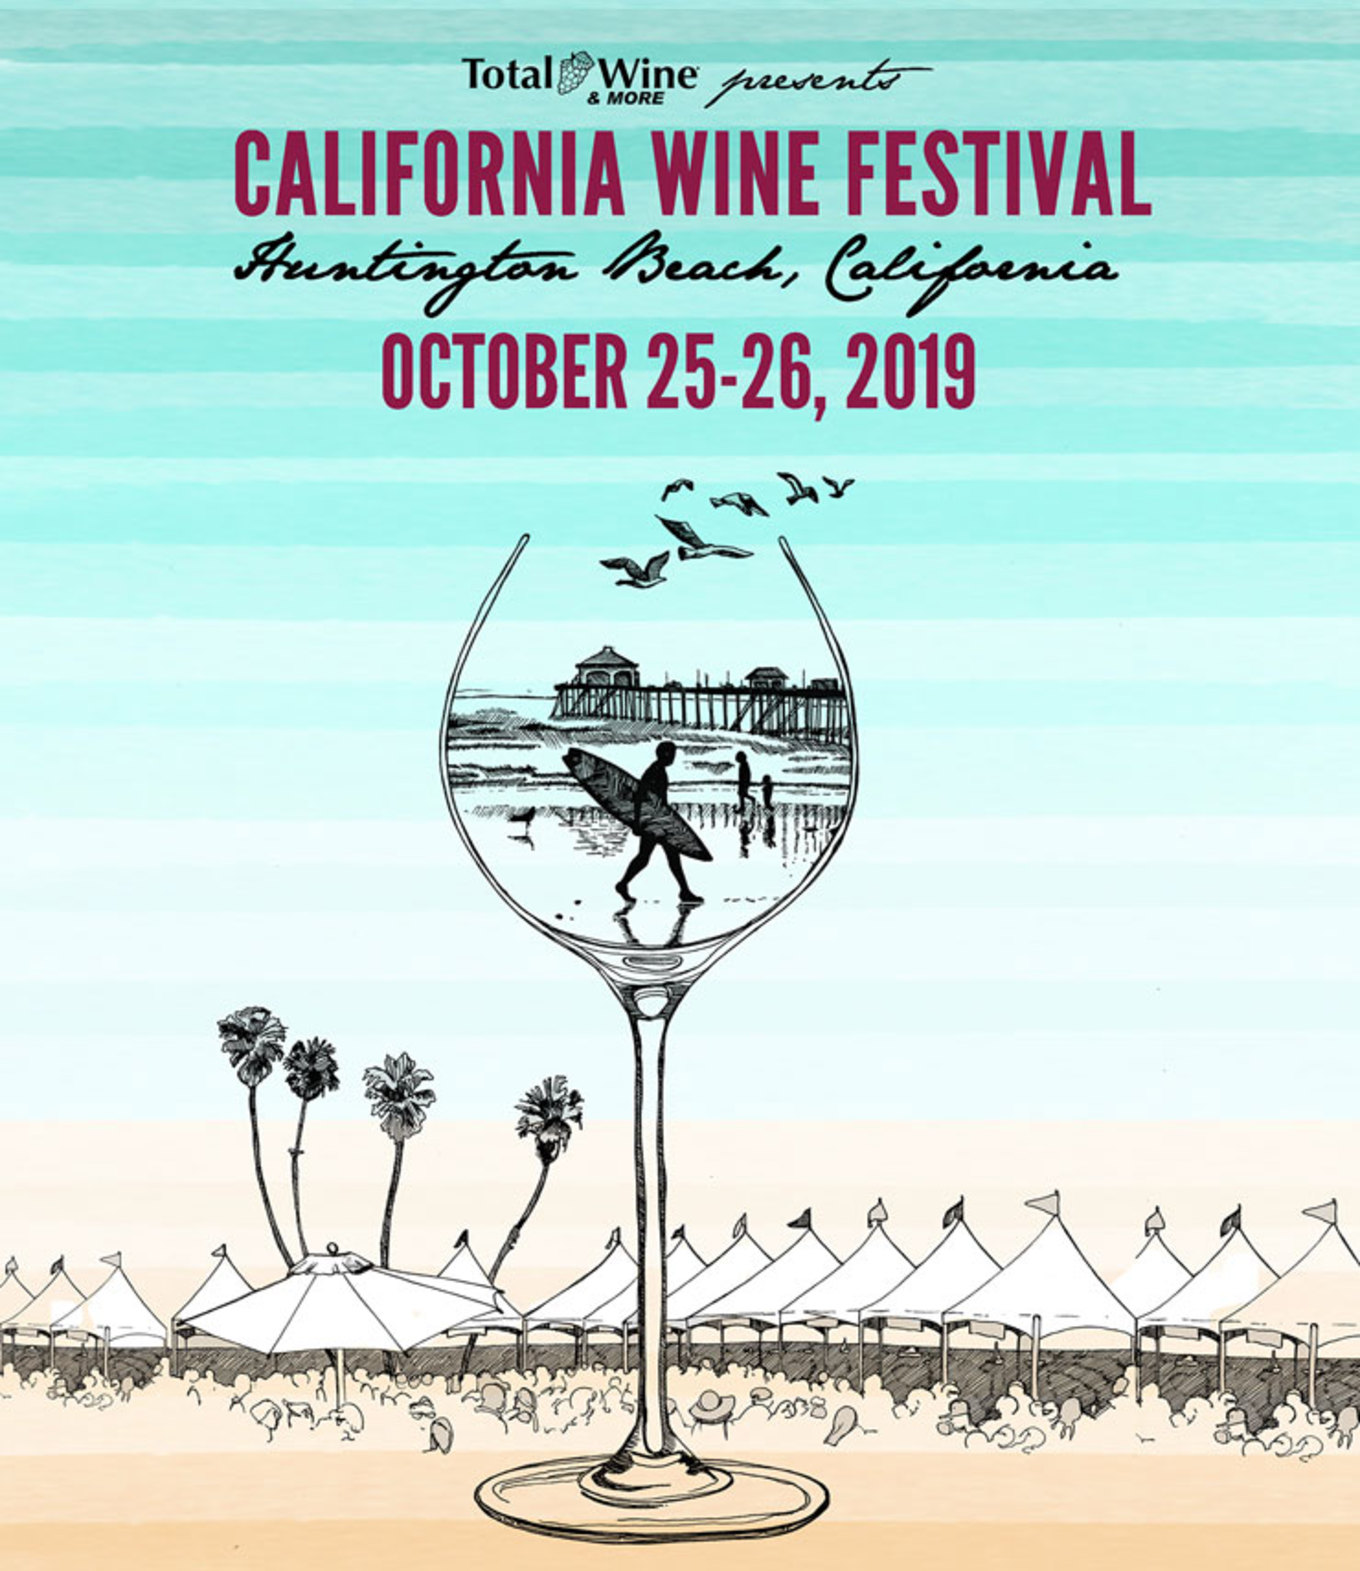 photograph regarding Total Wine Printable Coupons called California Wine Competition - Huntington Beach front at Paséa Lodge